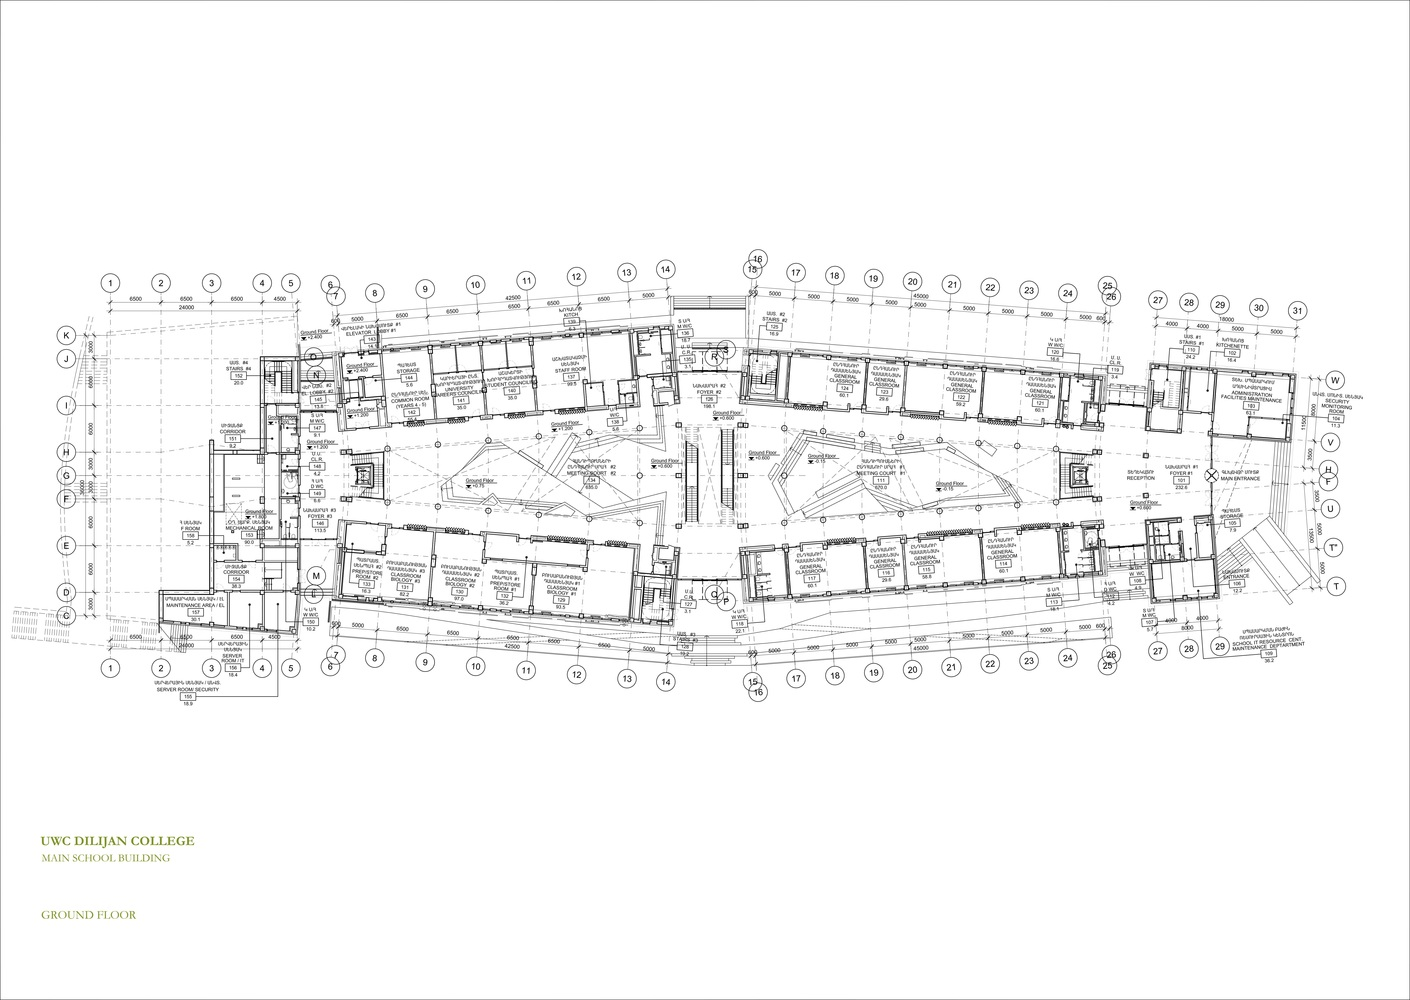 Gallery Of Uwc Dilijan College Tim Flynn Architects 22 Ford 7 3 Glow Plug Wiring Diagram Collegeground Floor Plan